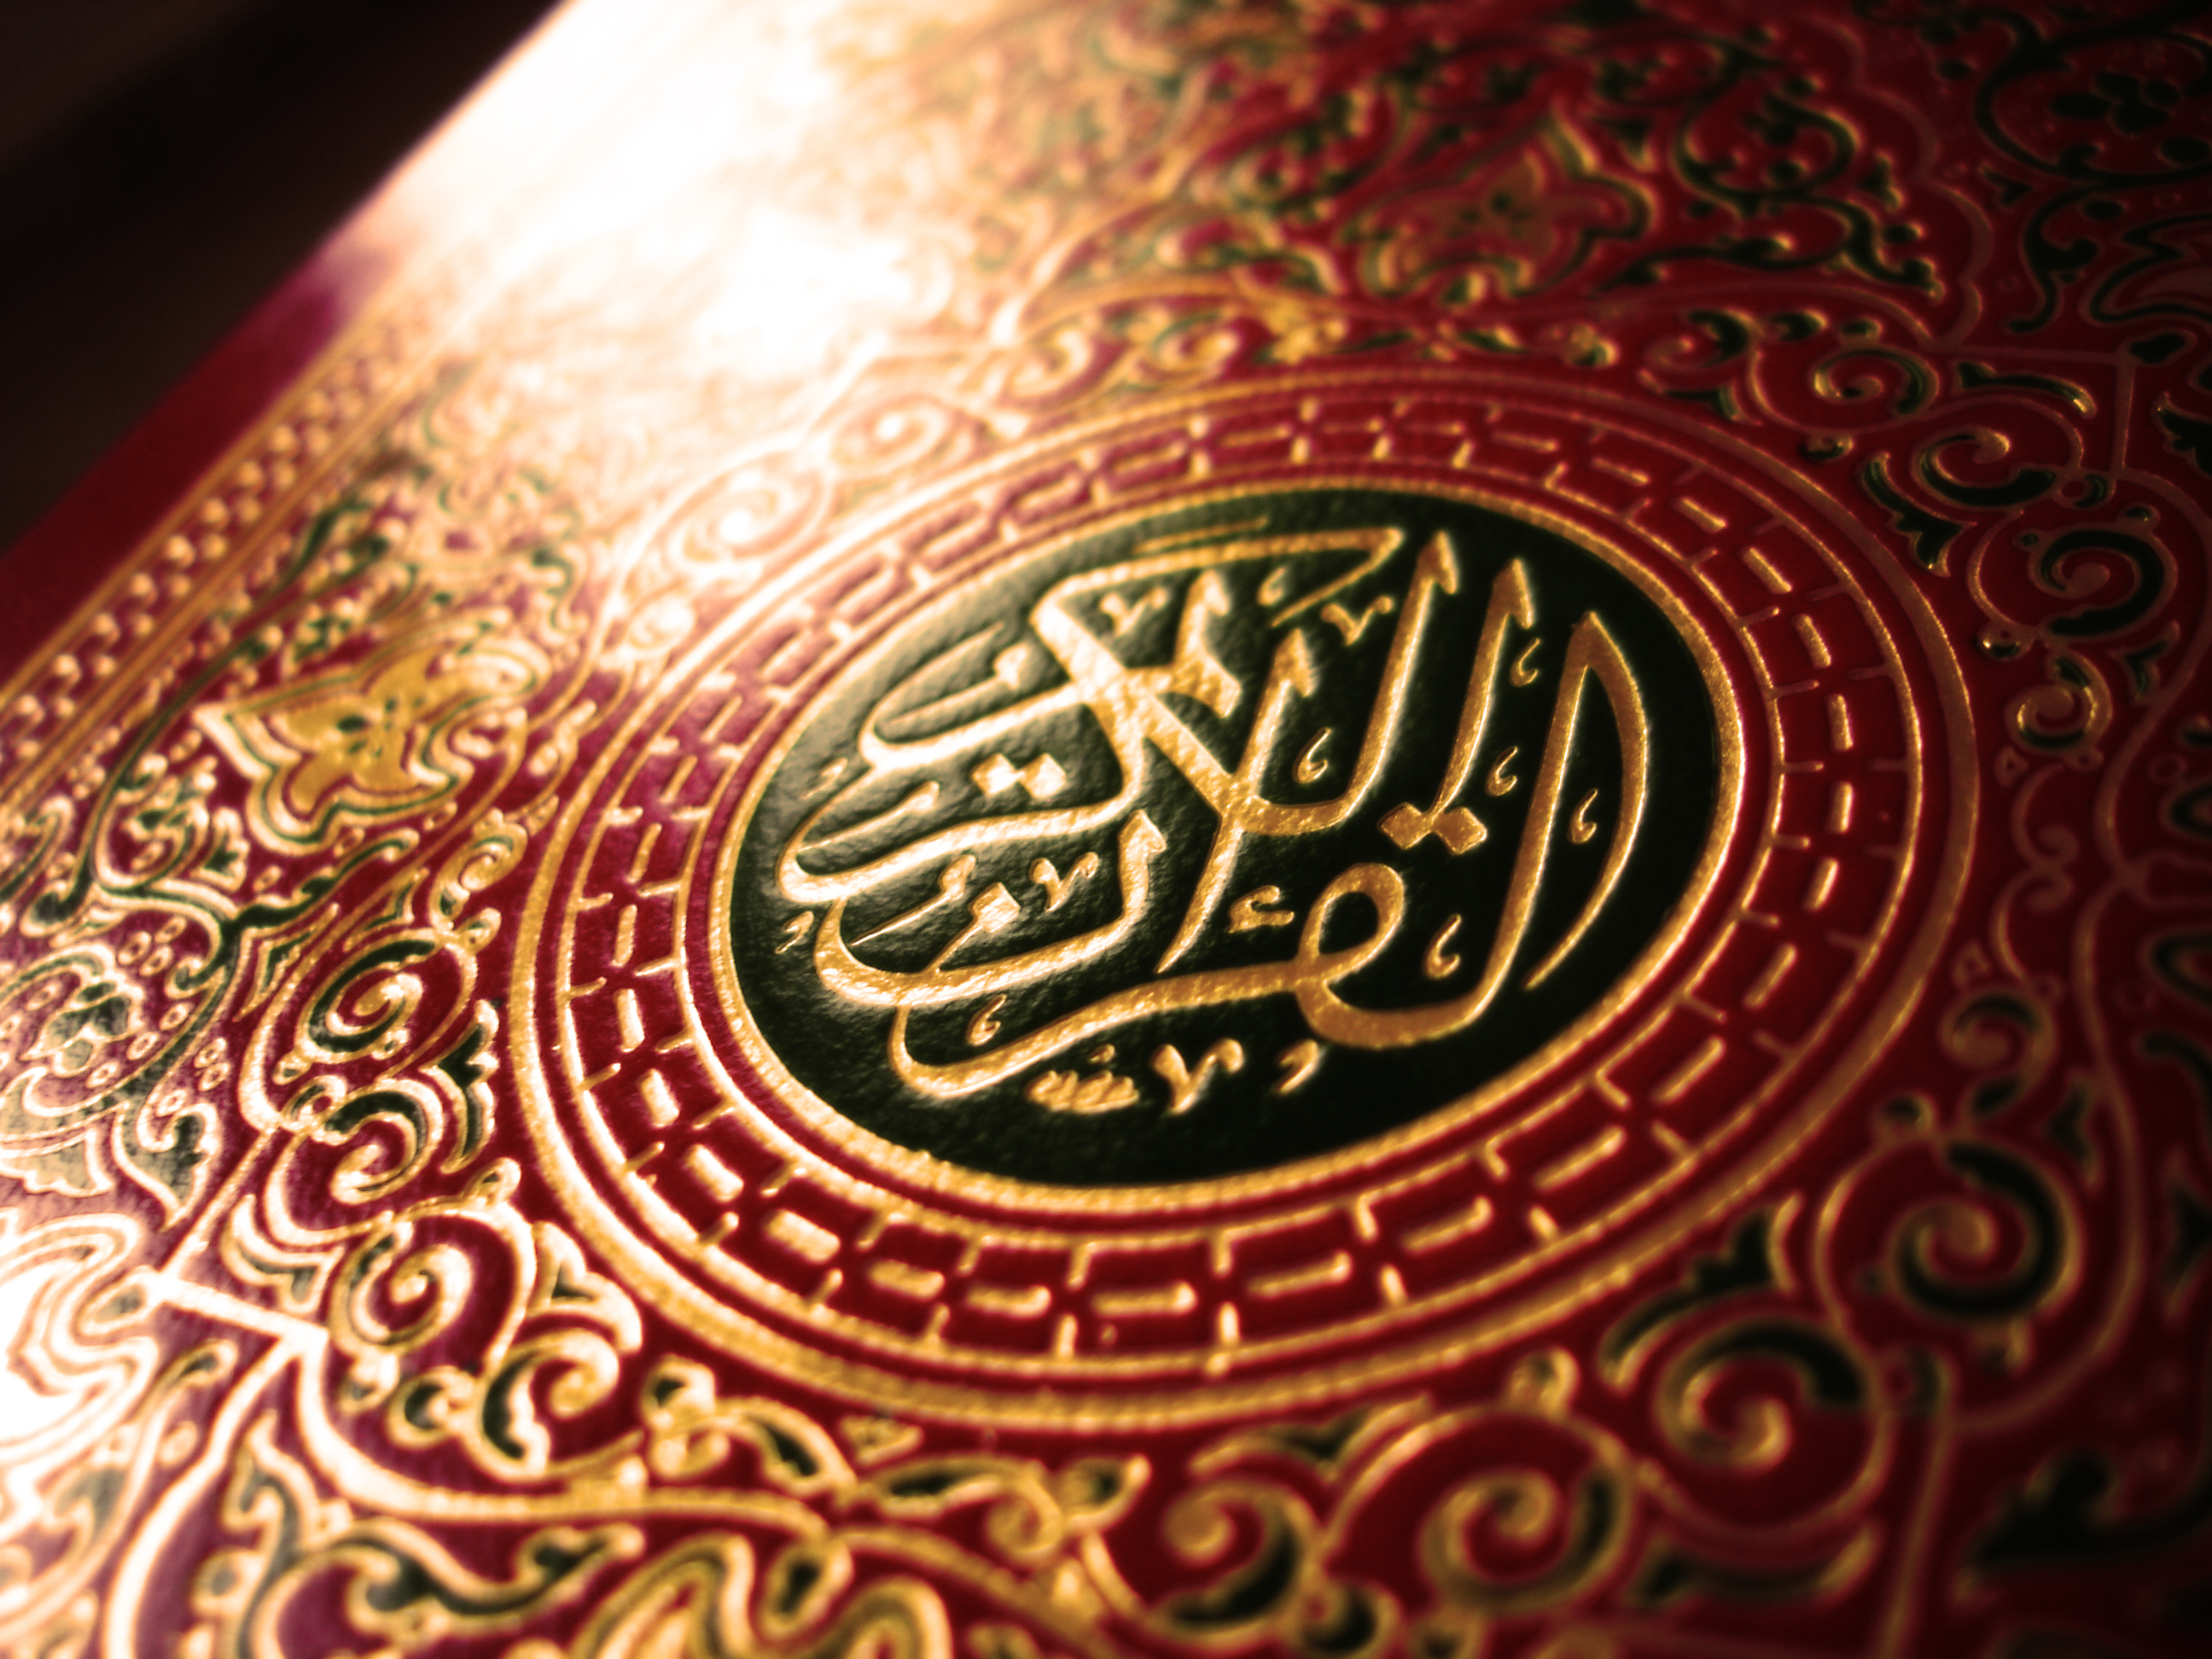 Whereas, the Bible is a collection of writings by different authors, the Qur'an is a direct revelation from Allah. The speaker in the Qur'an is God Almighty while in the Bible, you have many men writing about God.